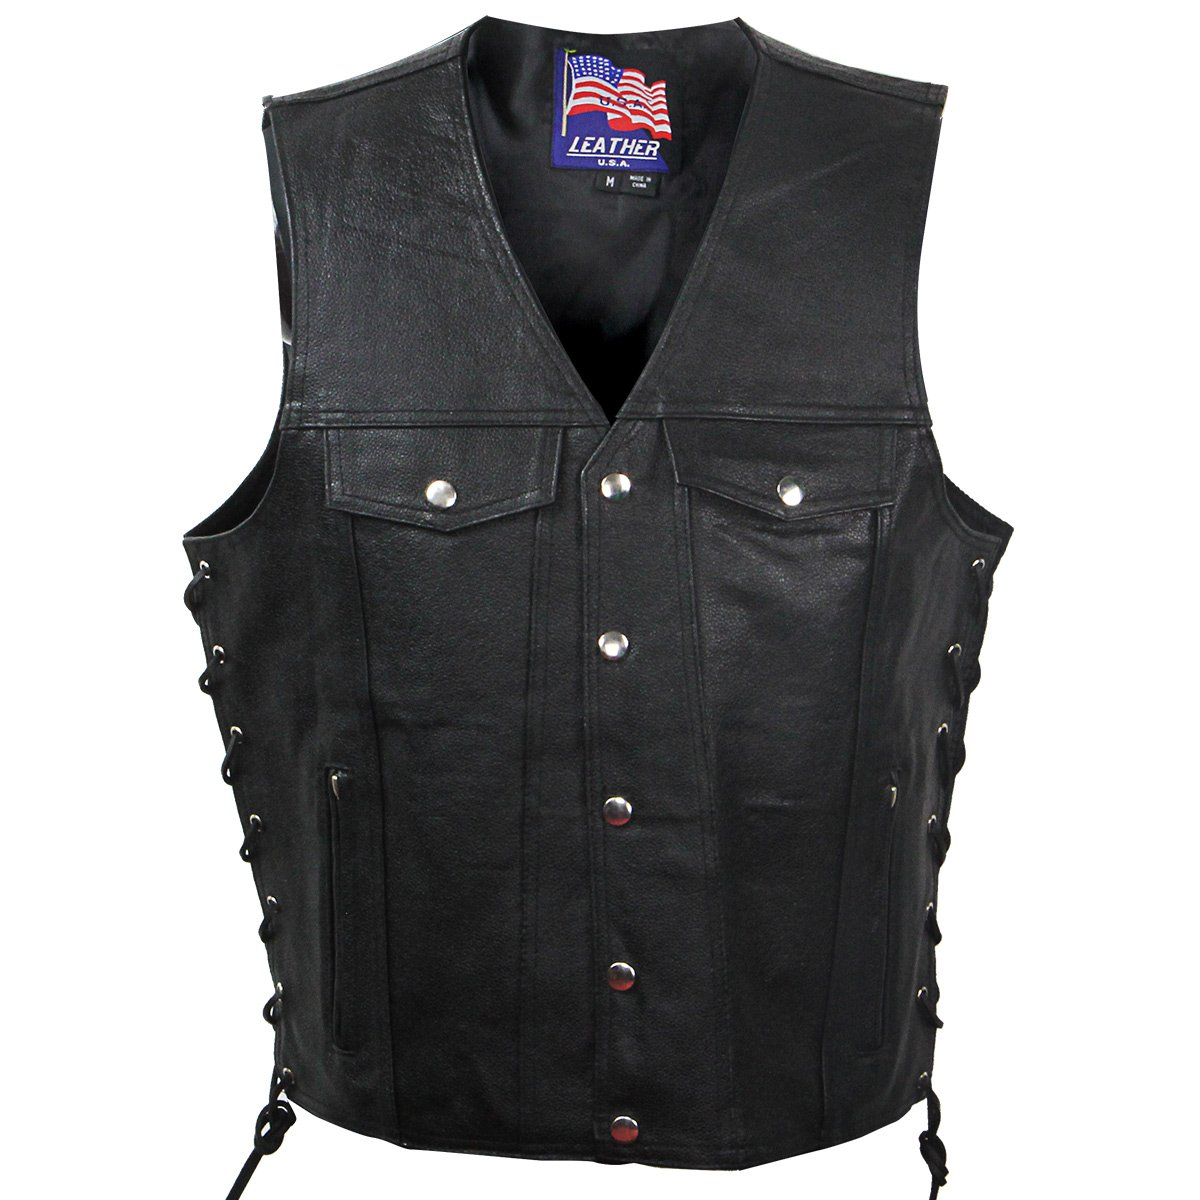 USA Leather VC207 Gunner Mens Leather Vest with Inside Gun Pocket - Large